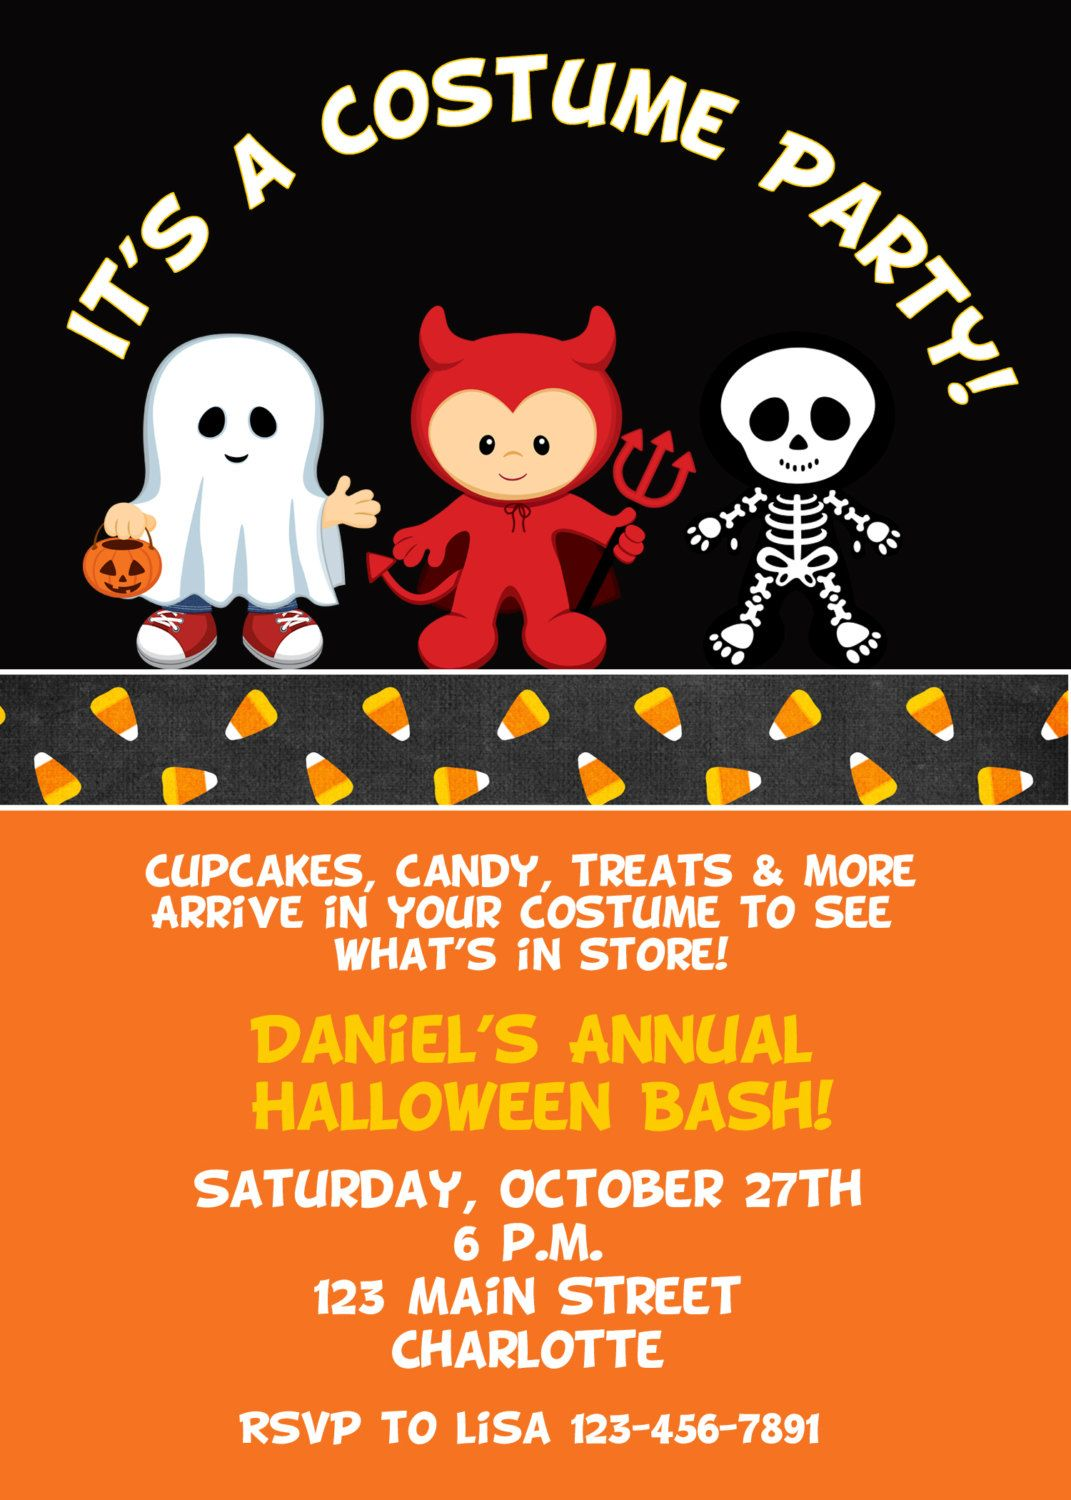 Halloween costume party invitation Halloween costume